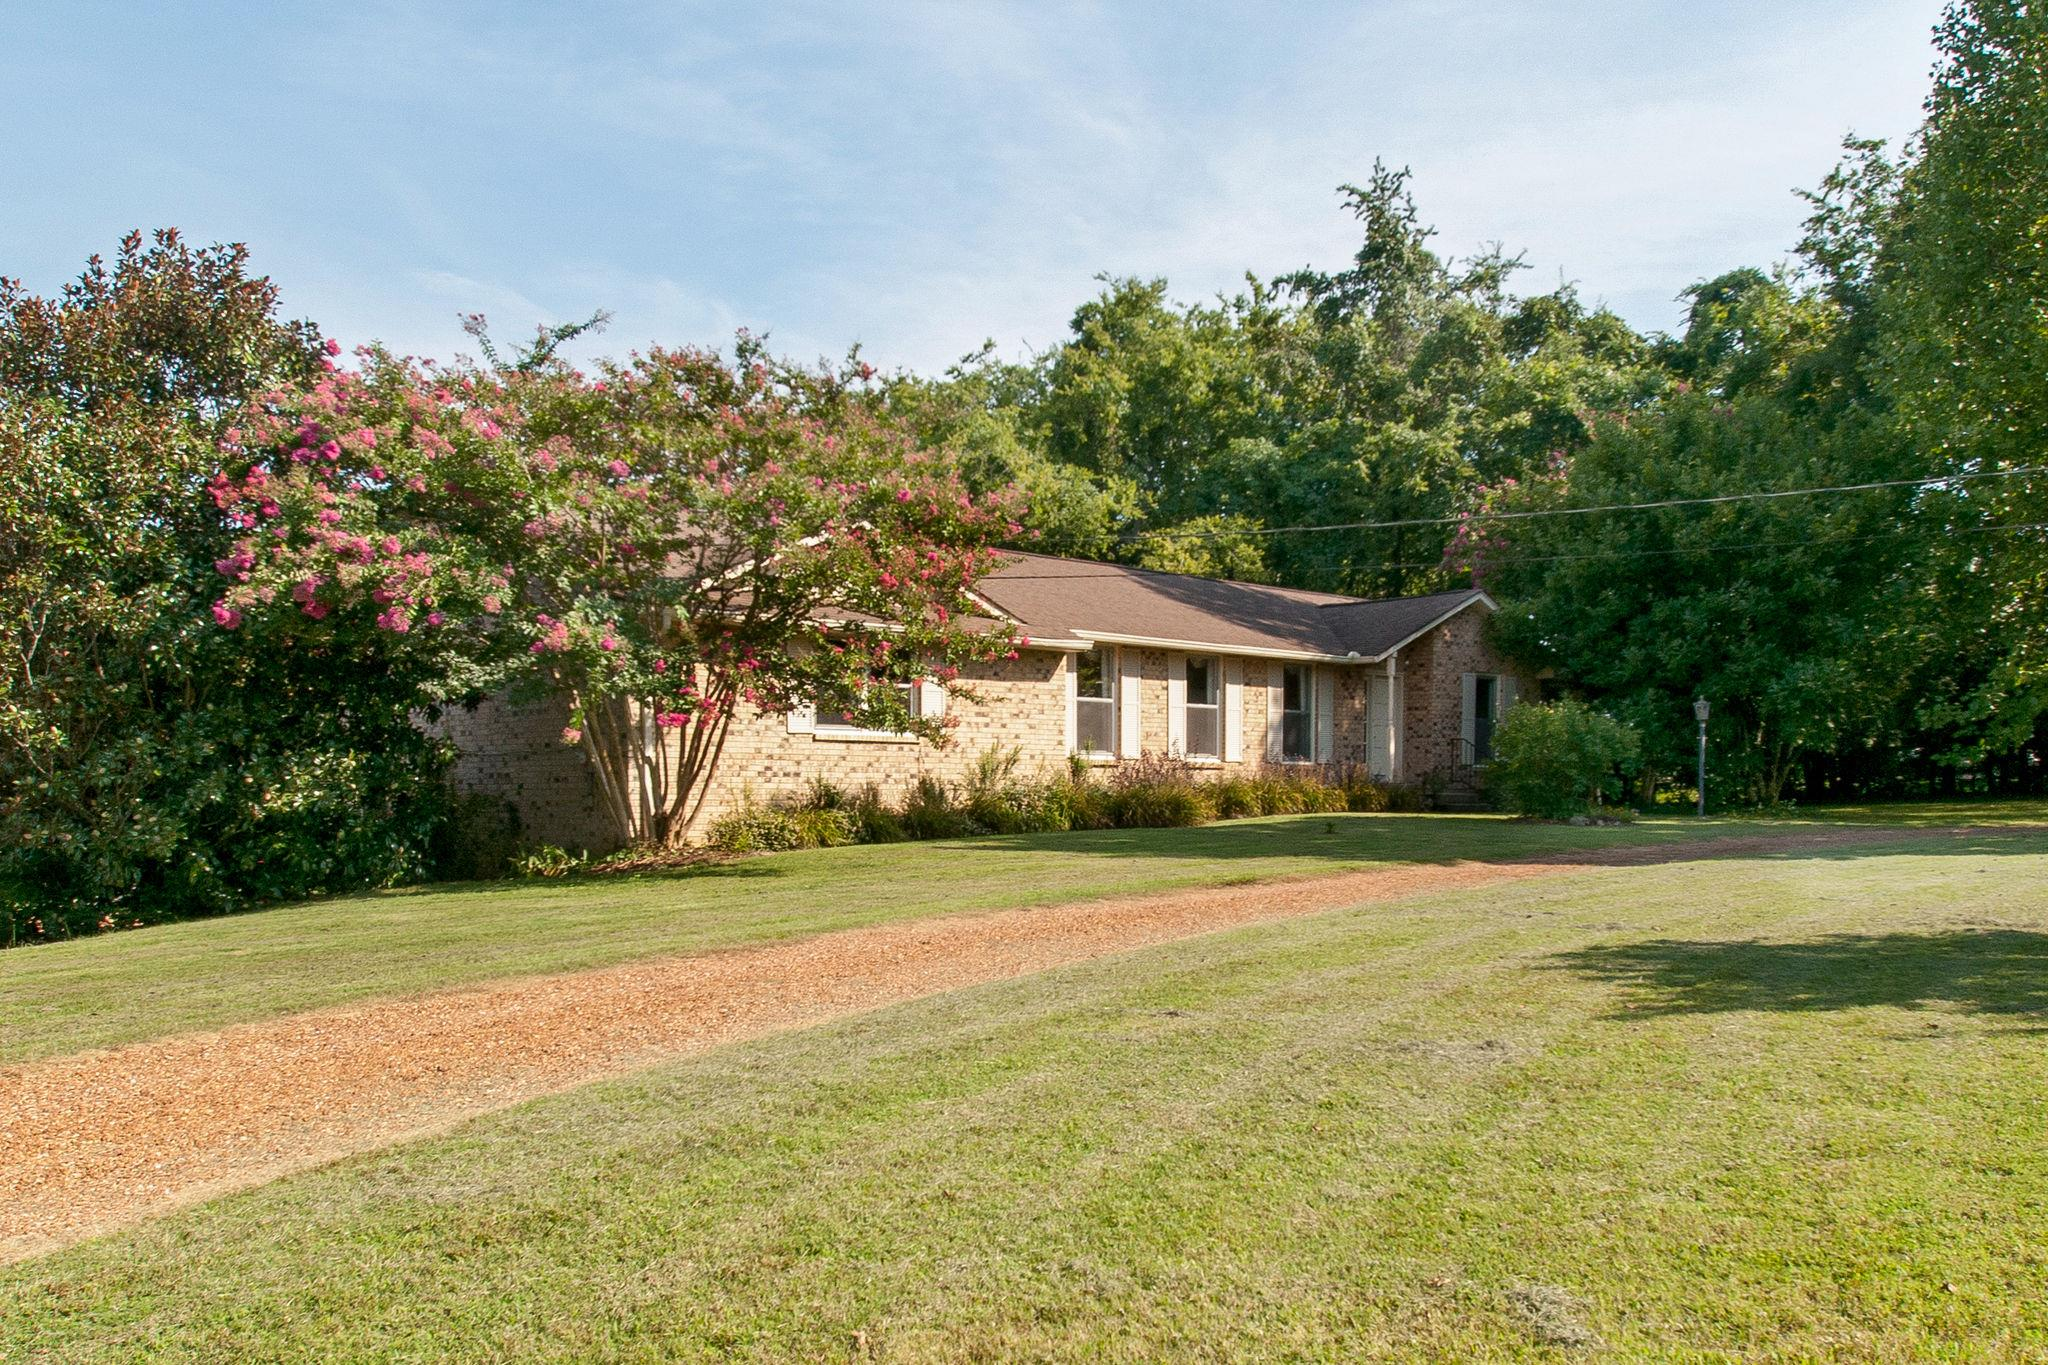 7921 Meadow View Dr, Bellevue in Davidson County County, TN 37221 Home for Sale